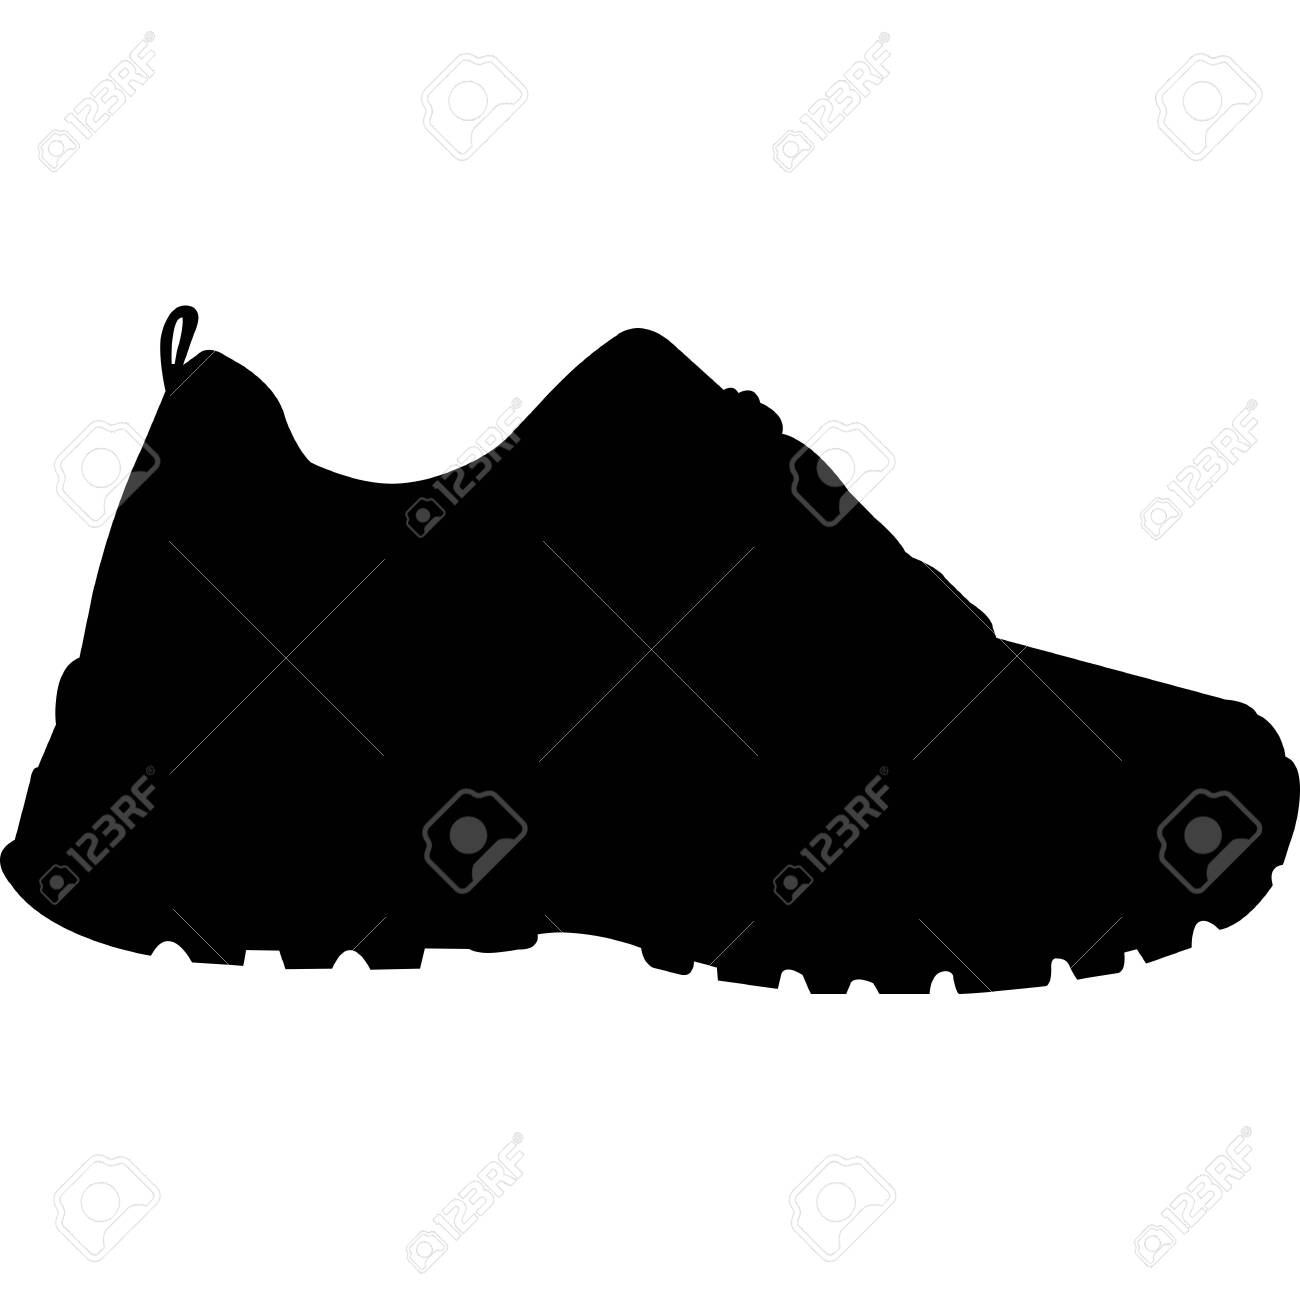 Womens Shoes Silhouette Vector - 158309967